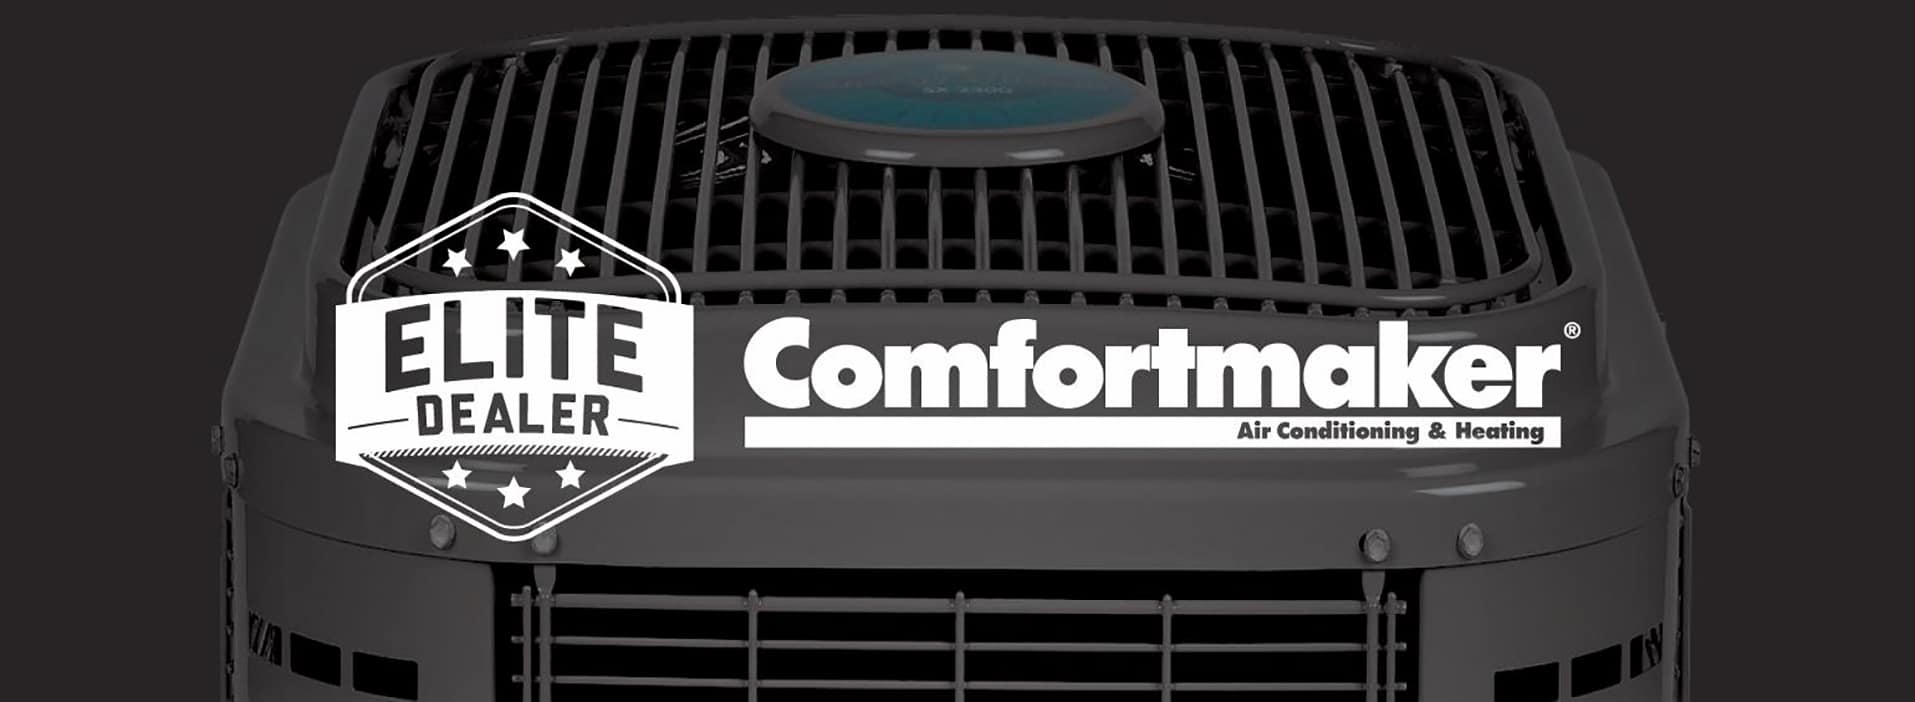 Comfortmaker Air Conditioning & Heating Elite Dealer